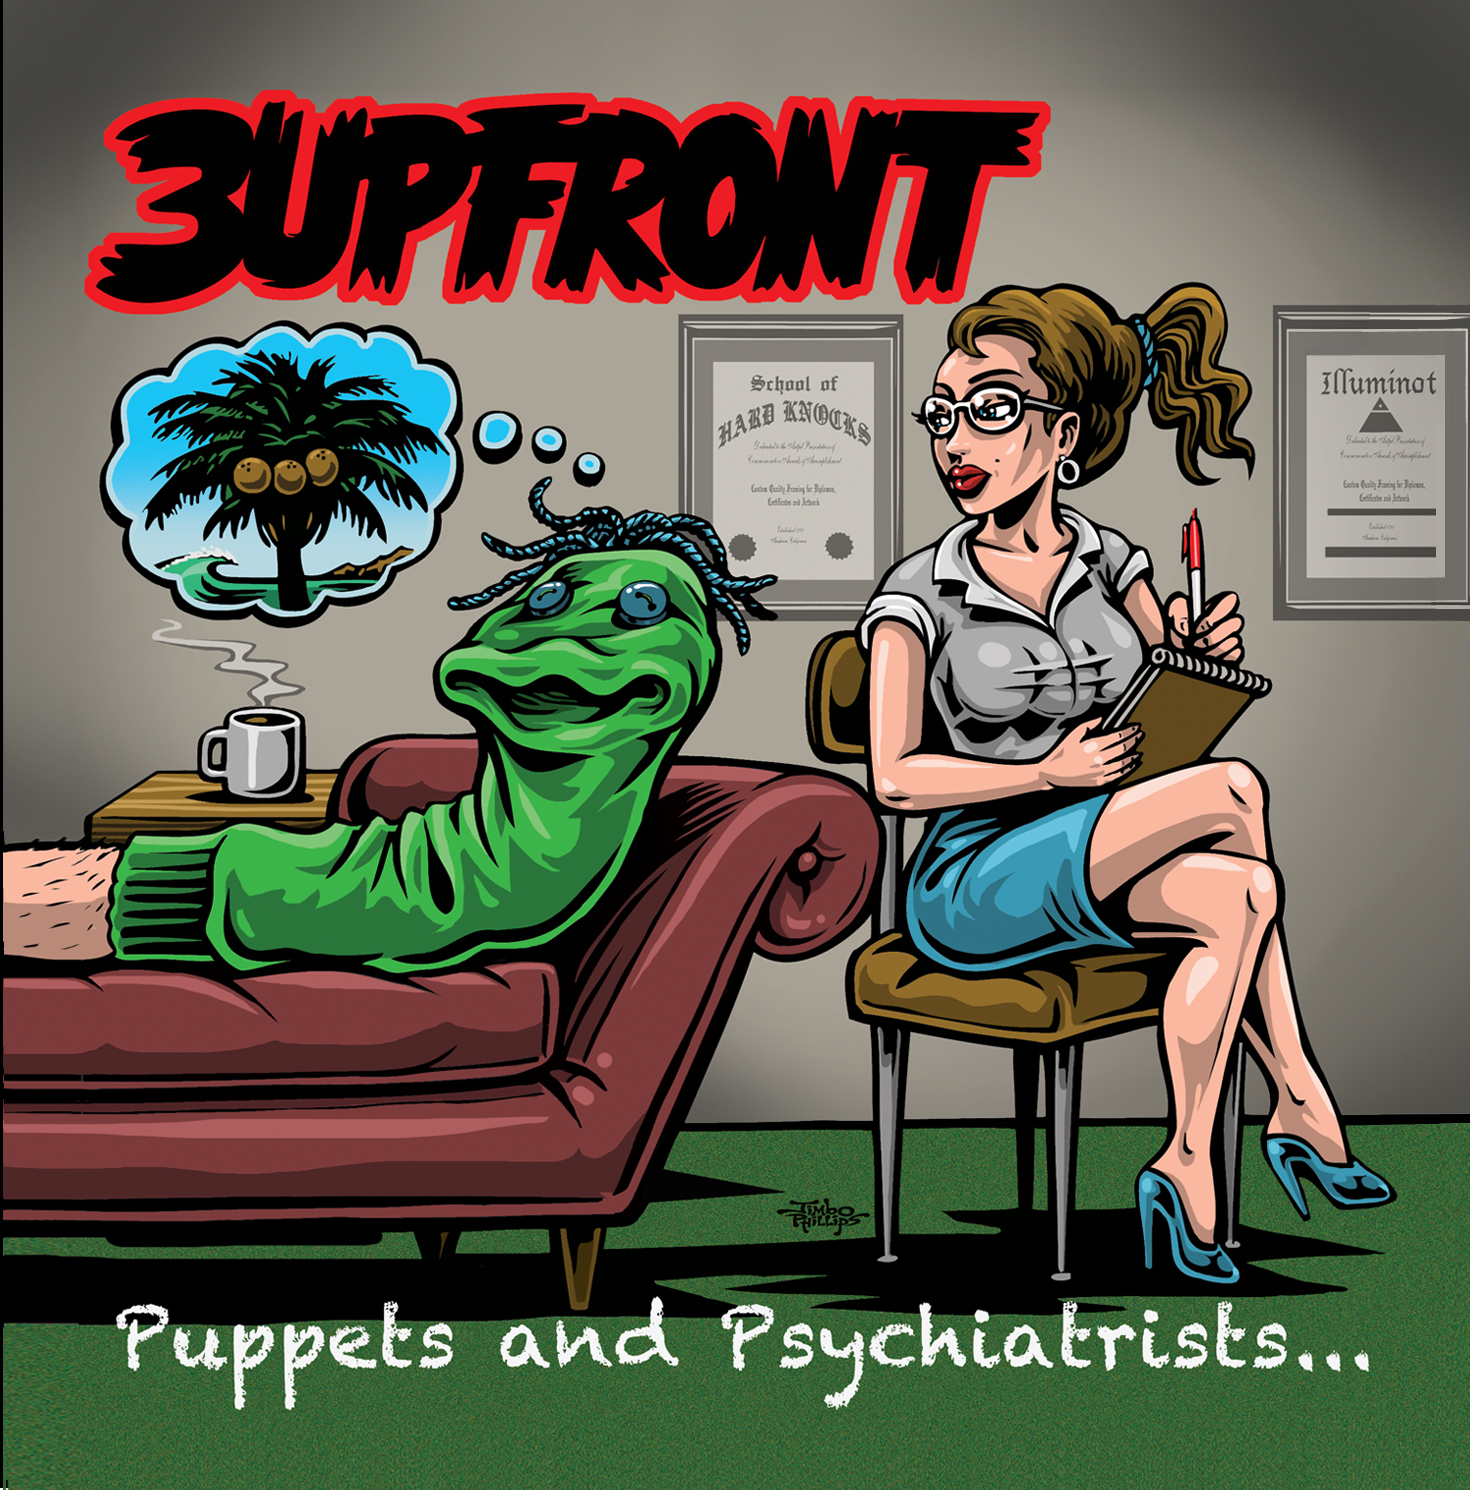 Puppets and Psychiatrists